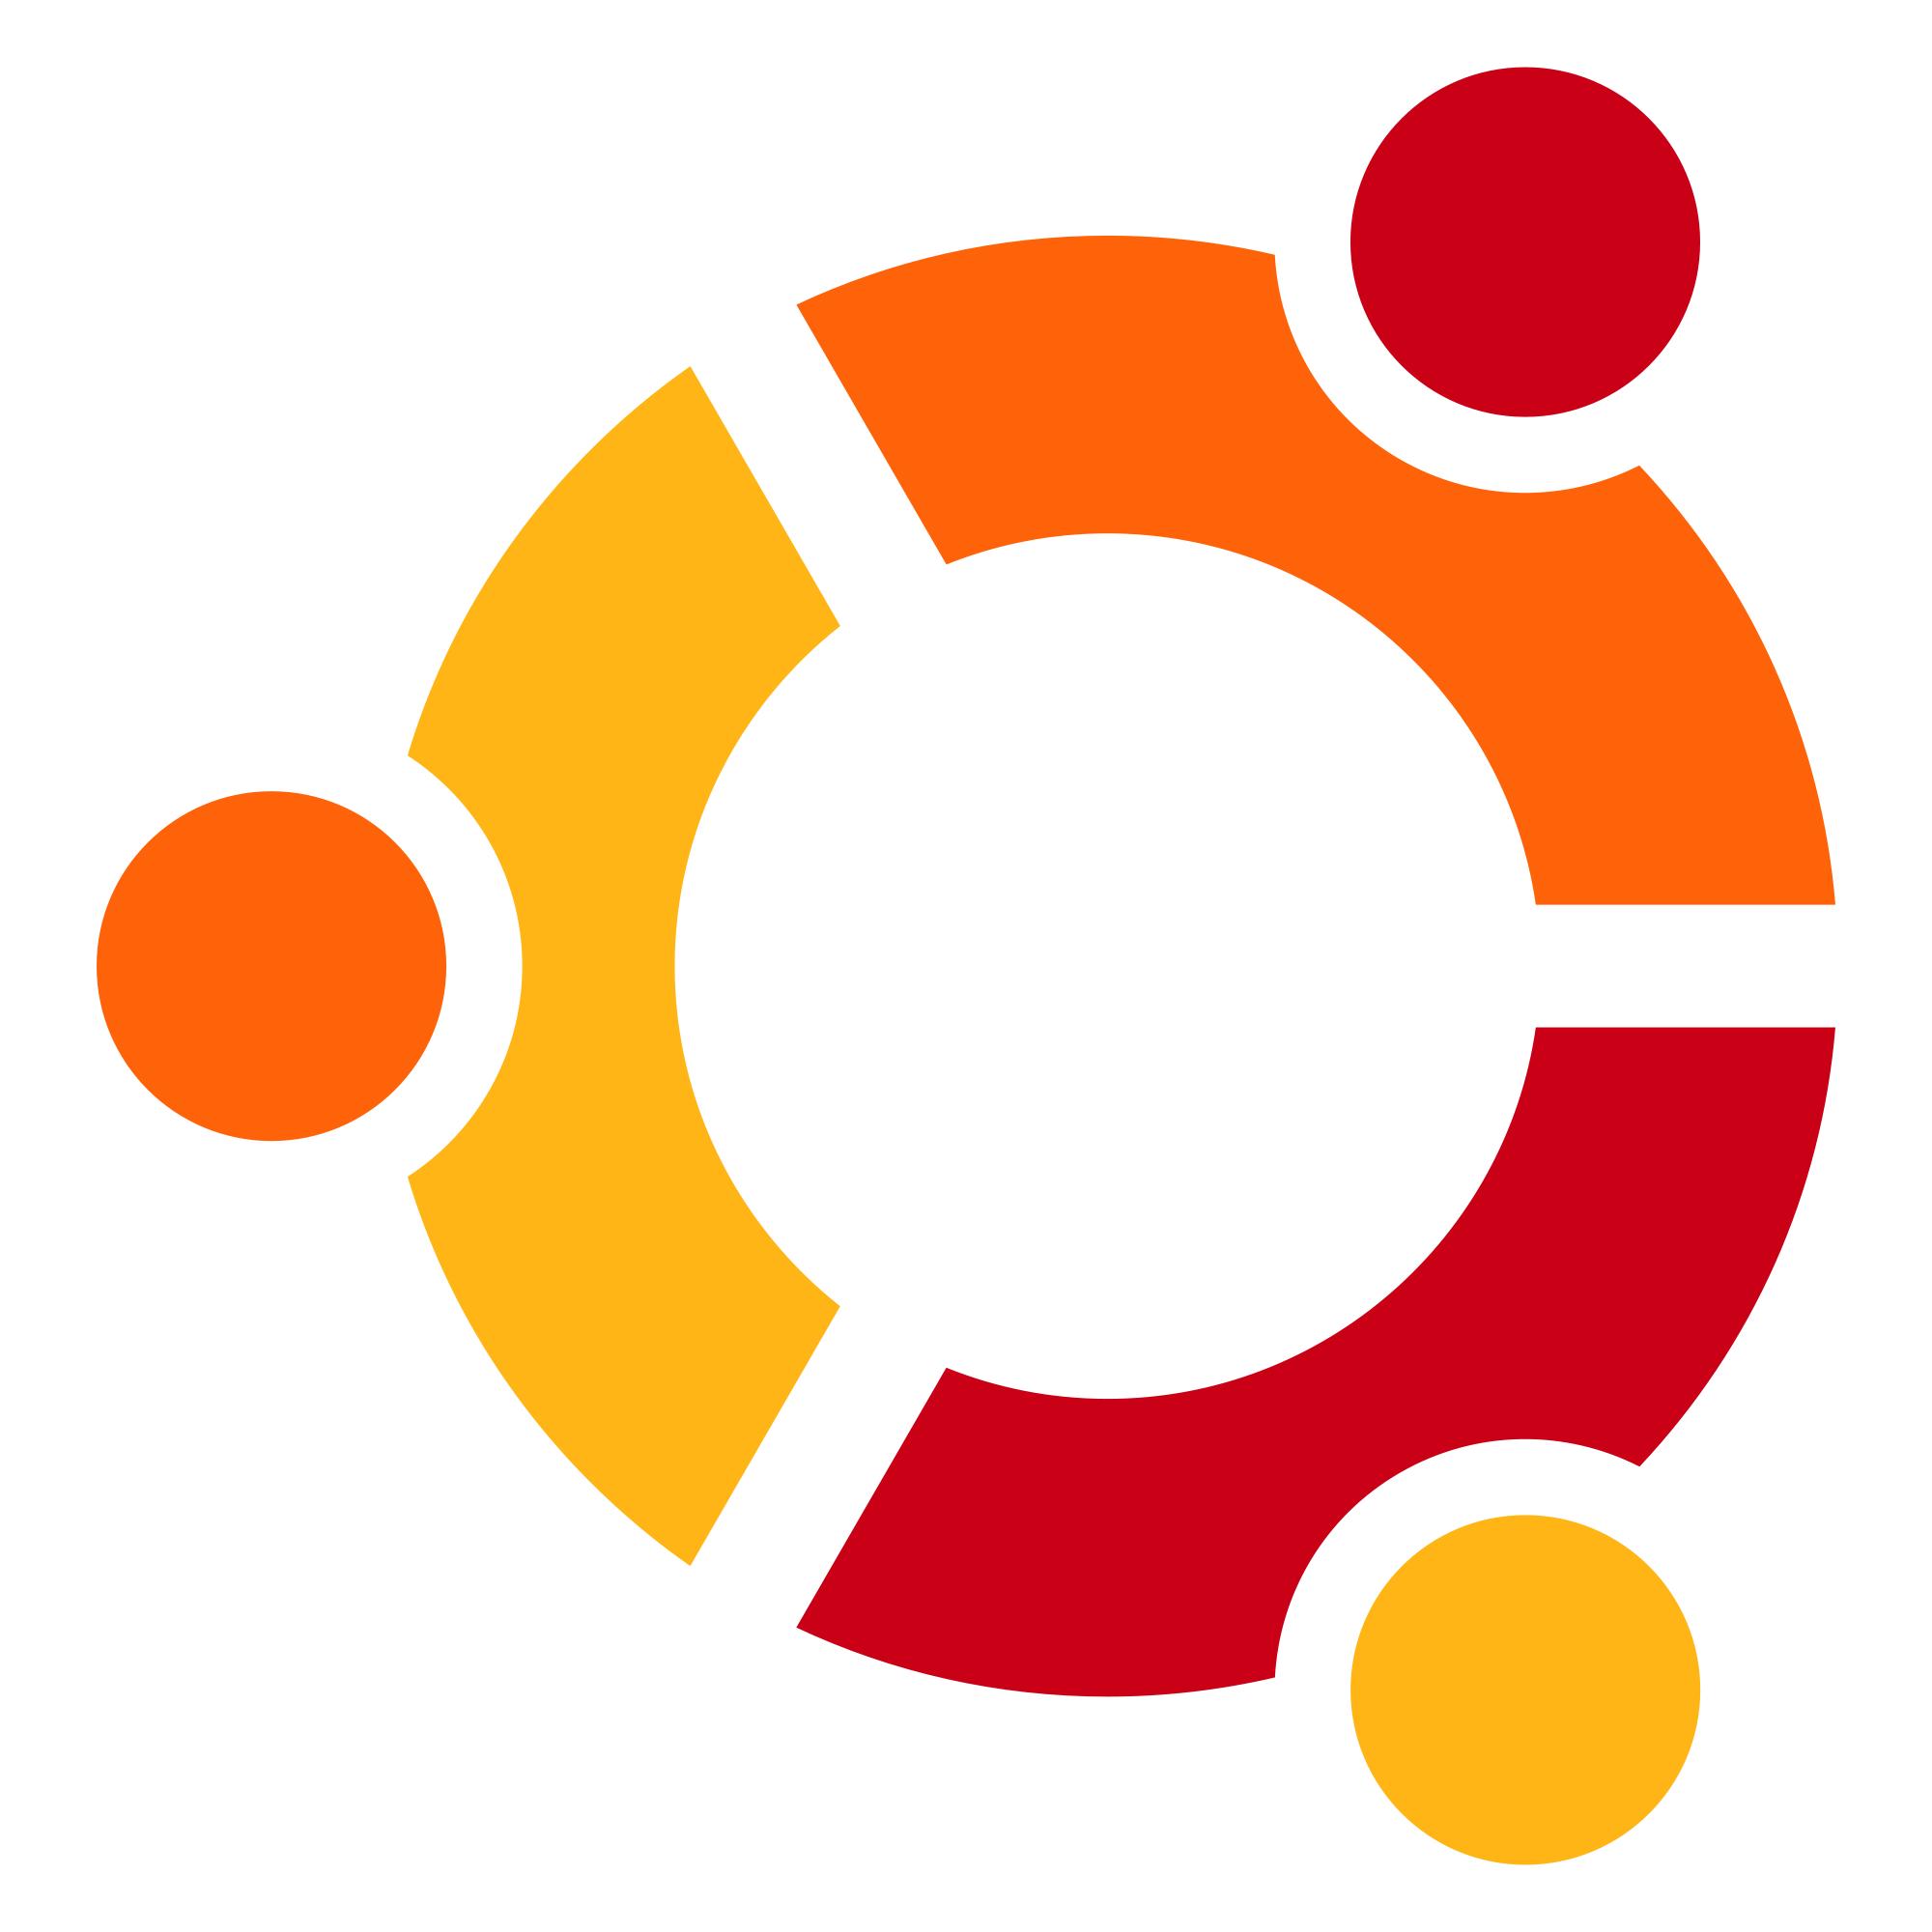 File former ubuntucof wikimedia. Ubuntu image viewer png svg vector library download